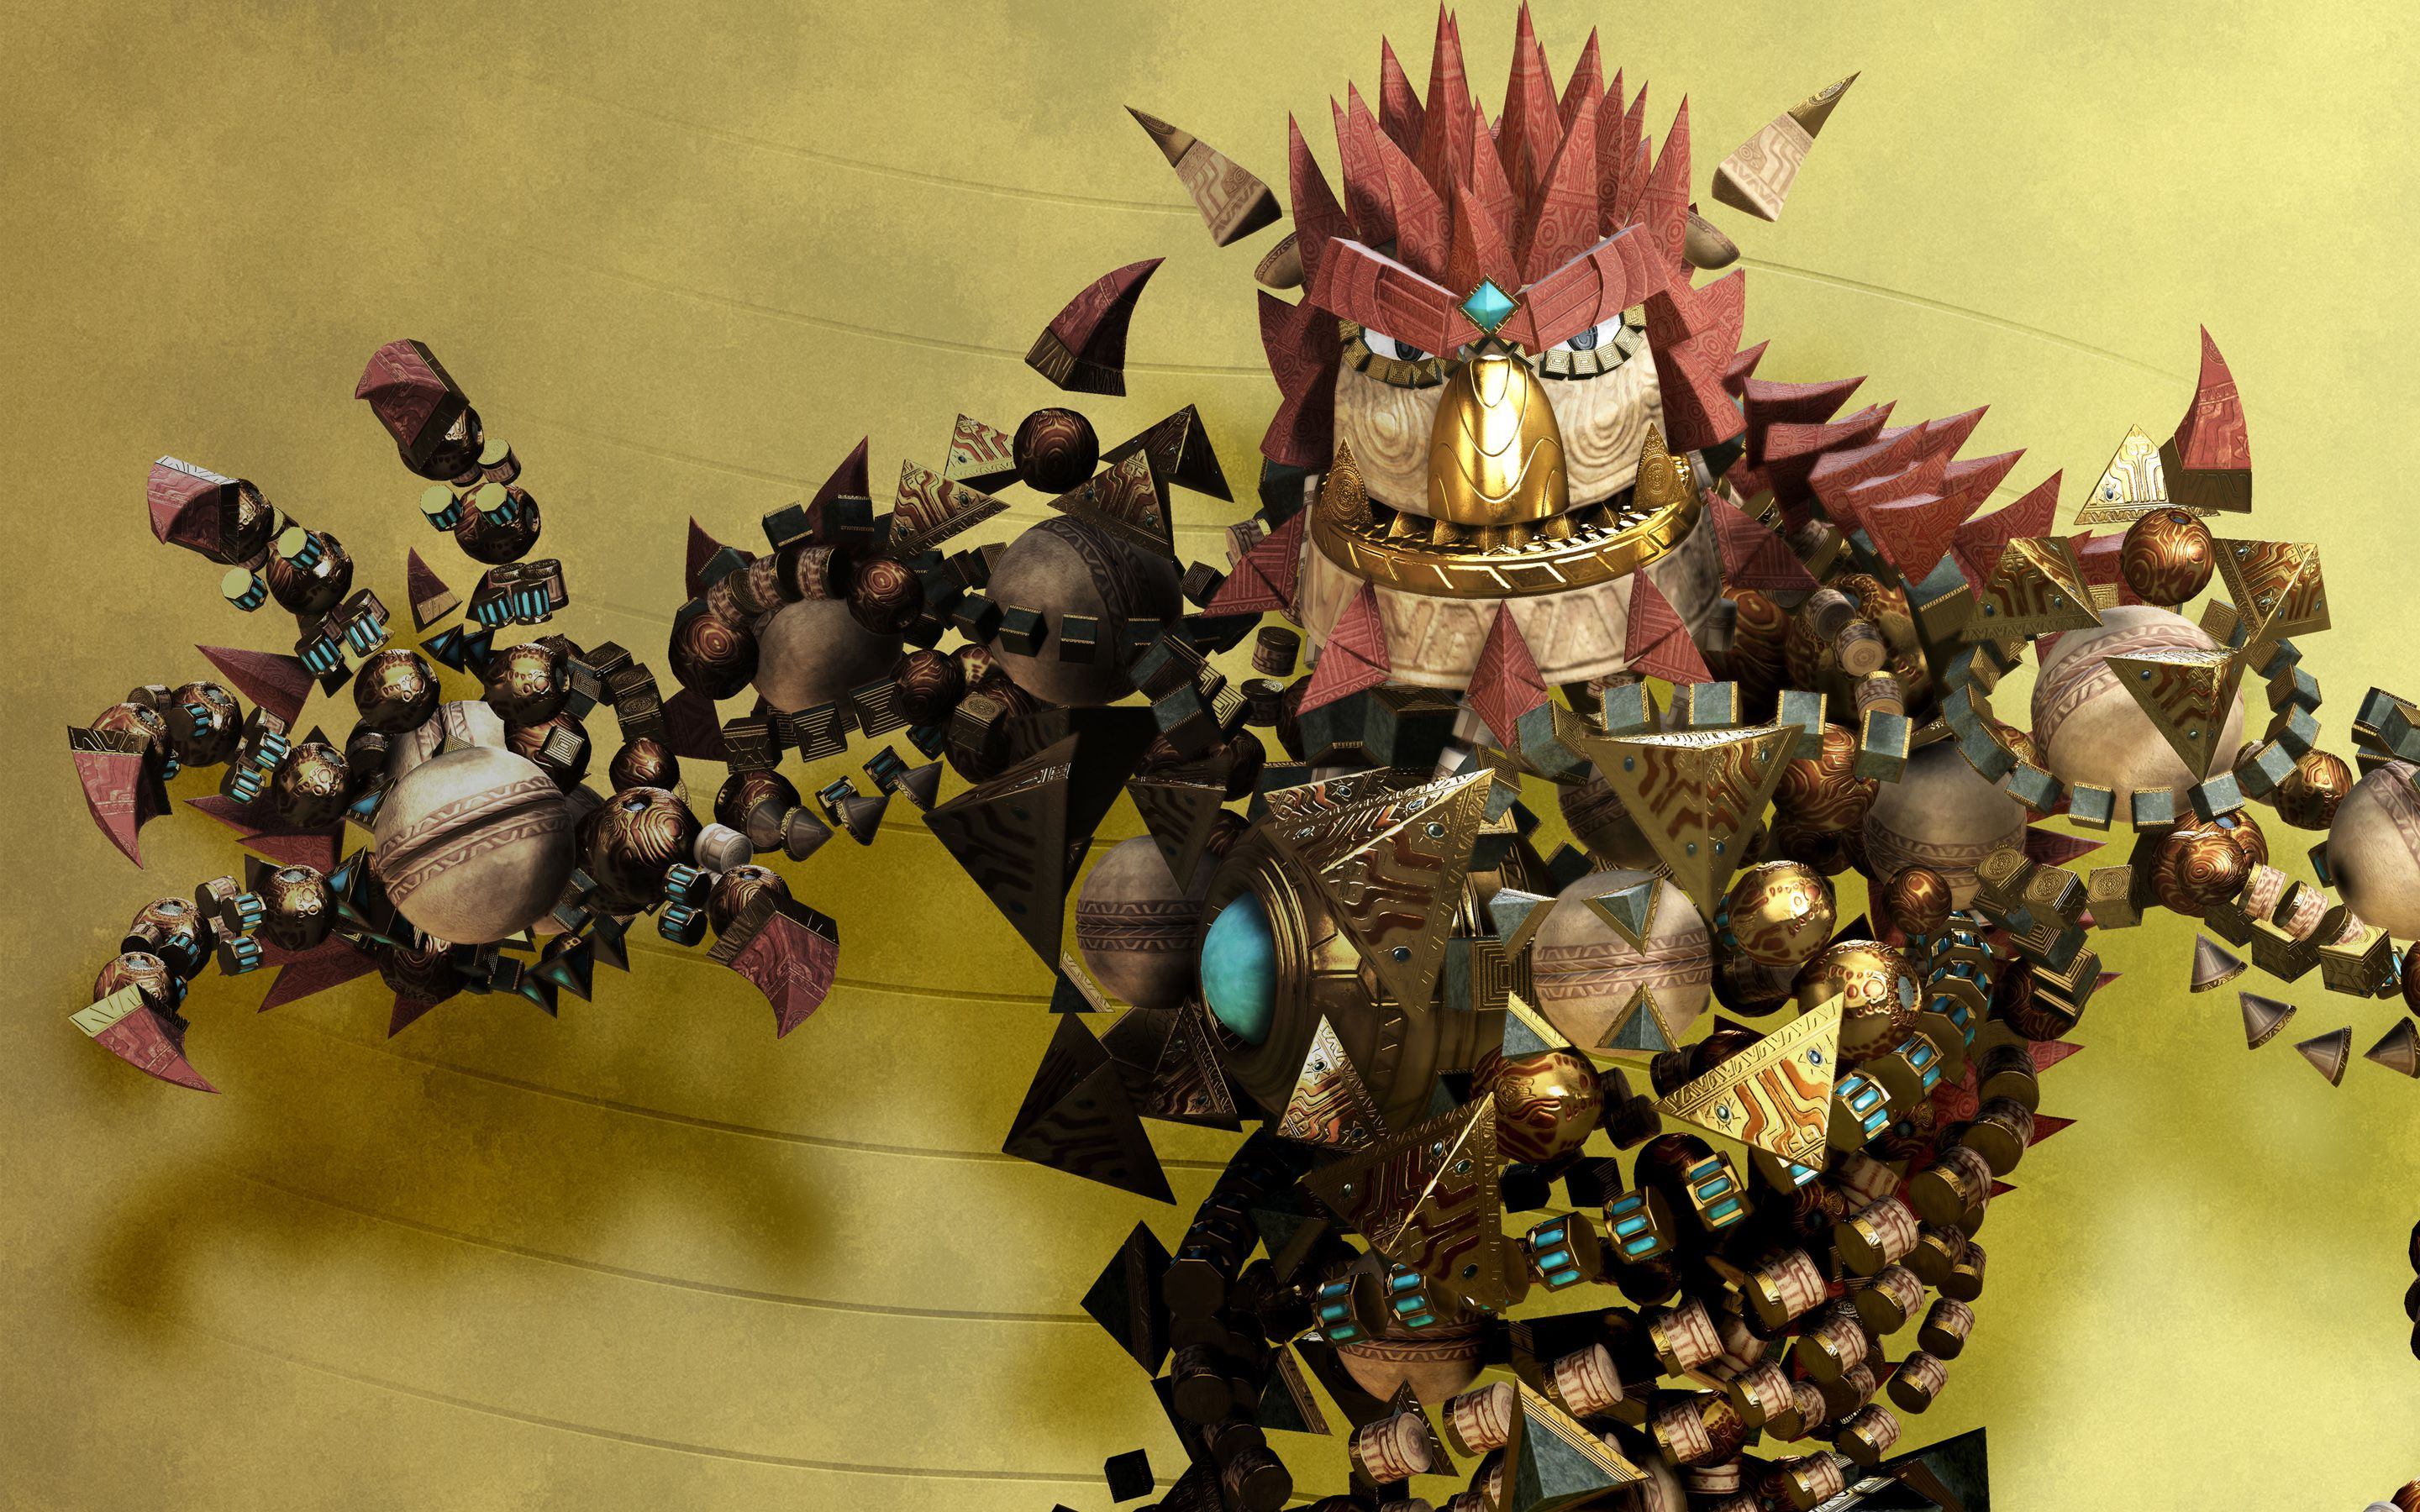 20 Minuten Gameplay-Video zum PS4 Exklusivtitel Knack